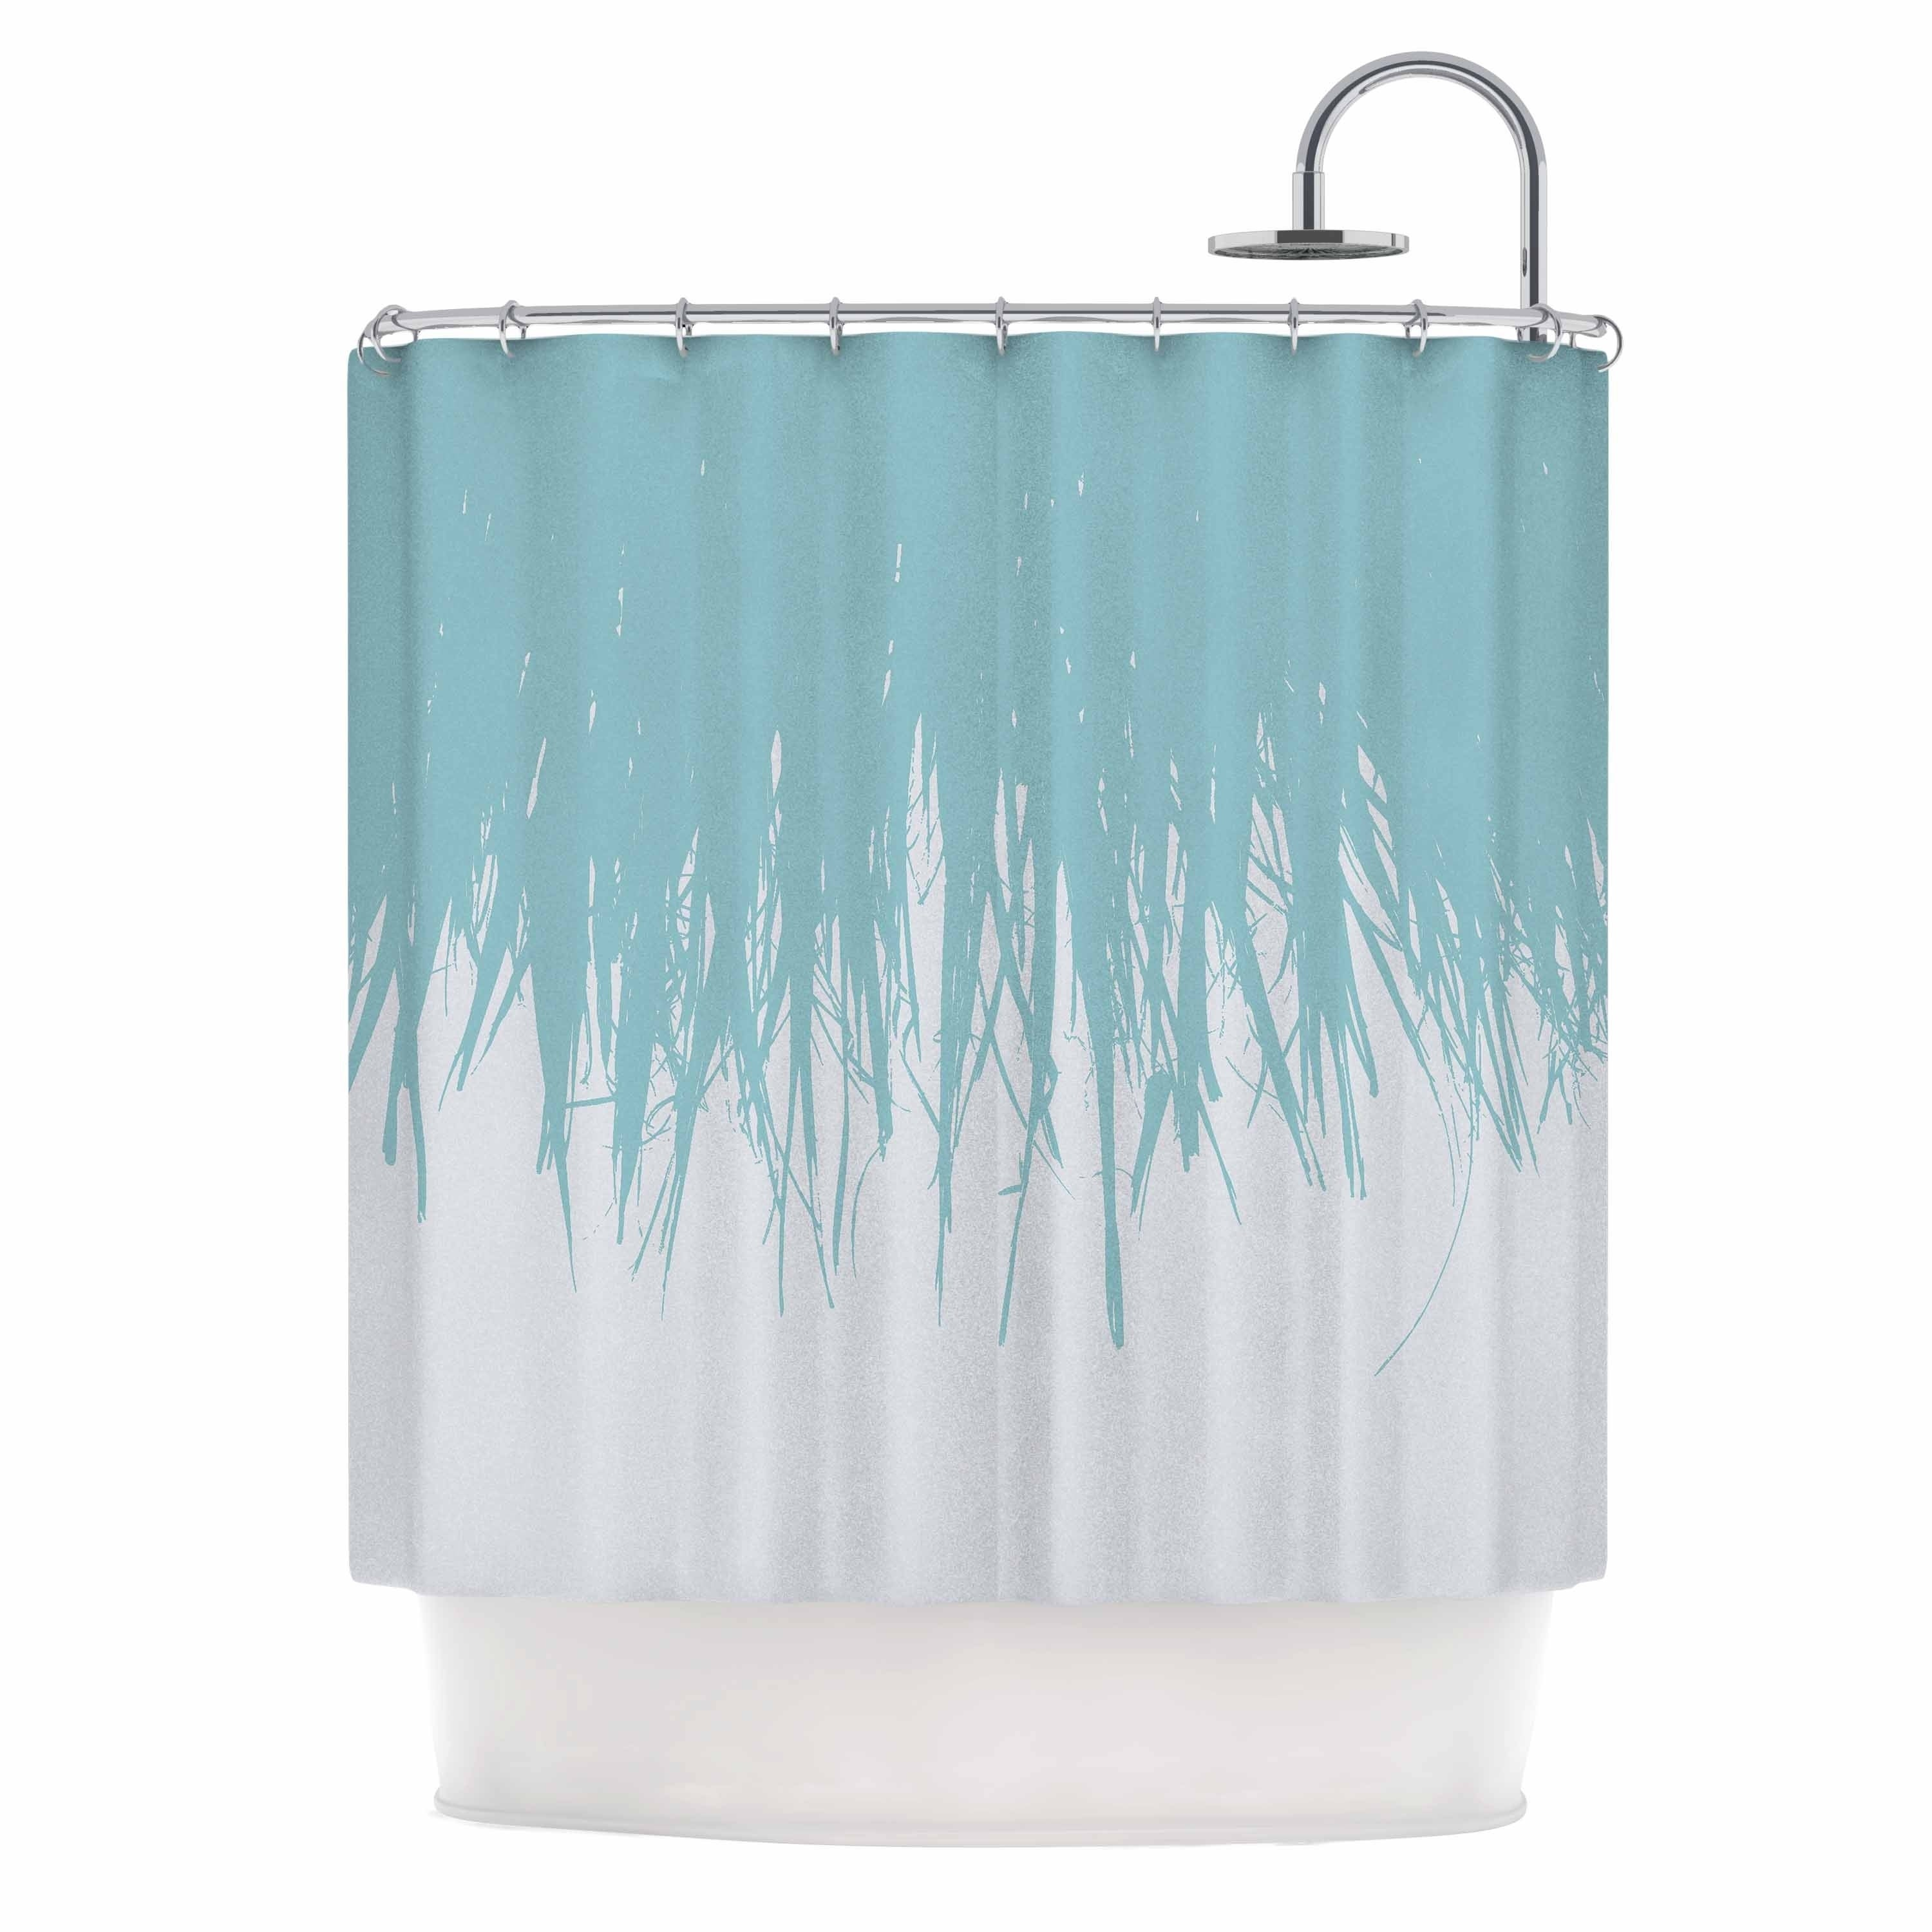 Project M Fringe Salt Blue White Digital Shower Curtain Free Shipping On Orders Over 45 28419341